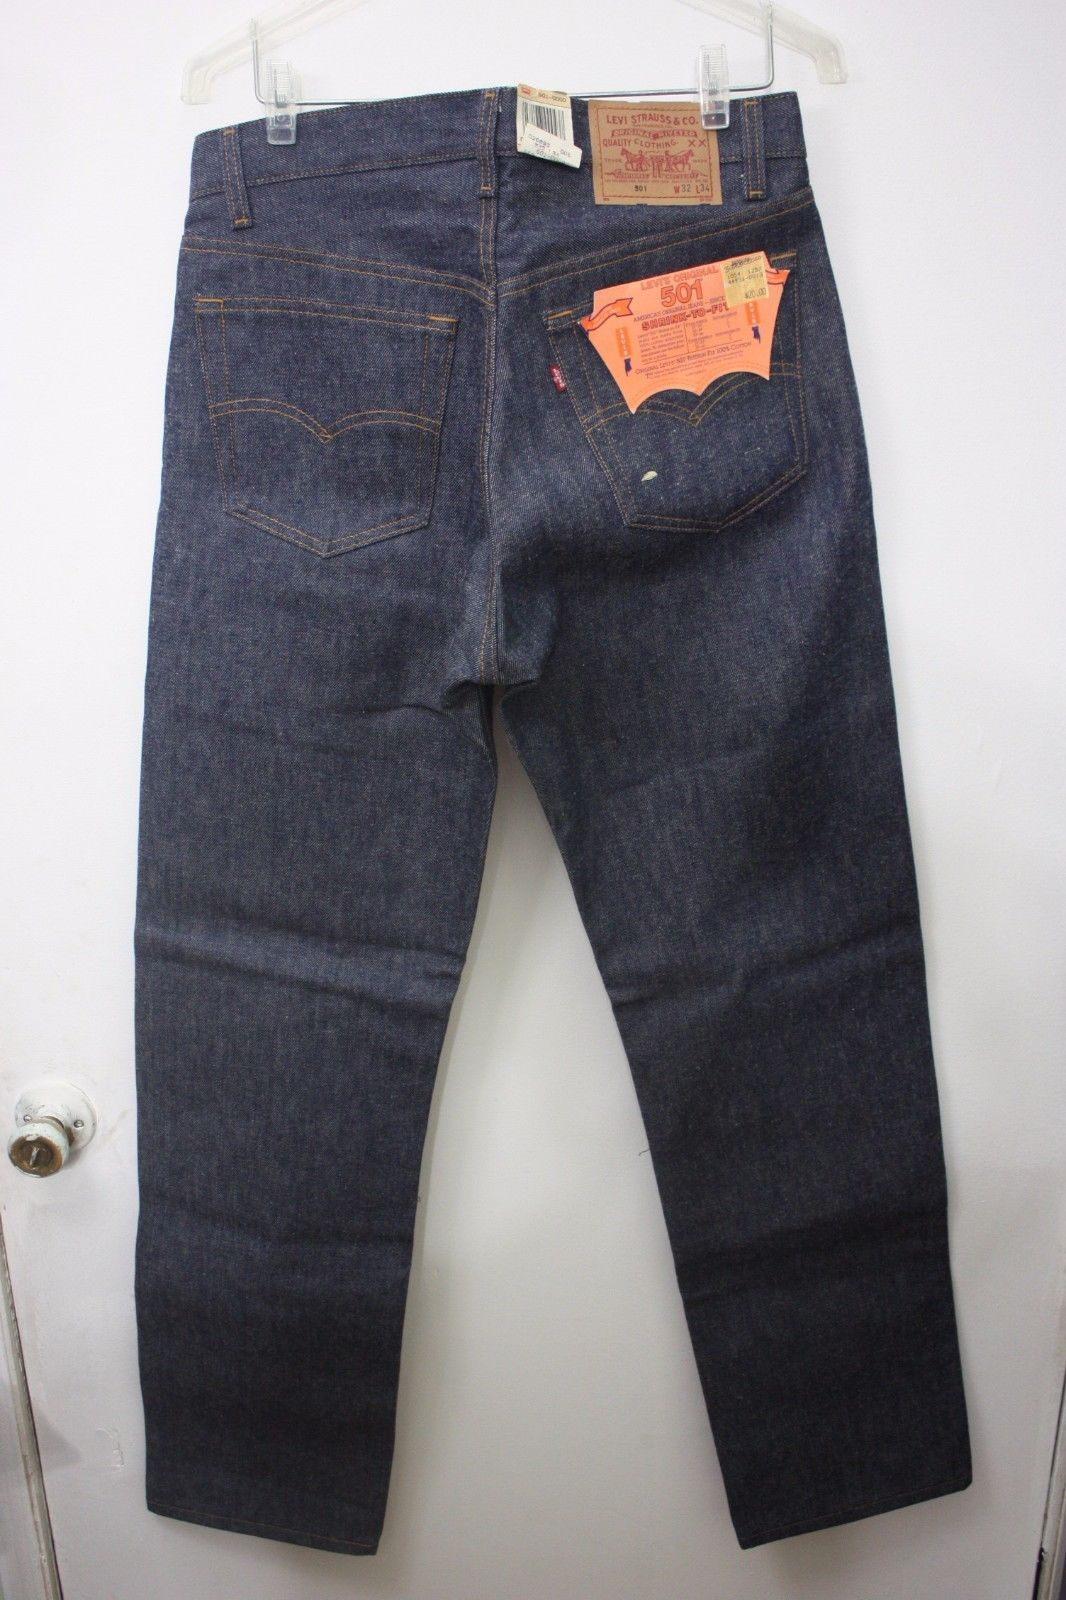 b03a9b0f746 32x34 1980's Vintage Levi's 501 Shrink to Fit Jeans Made in USA | eBay